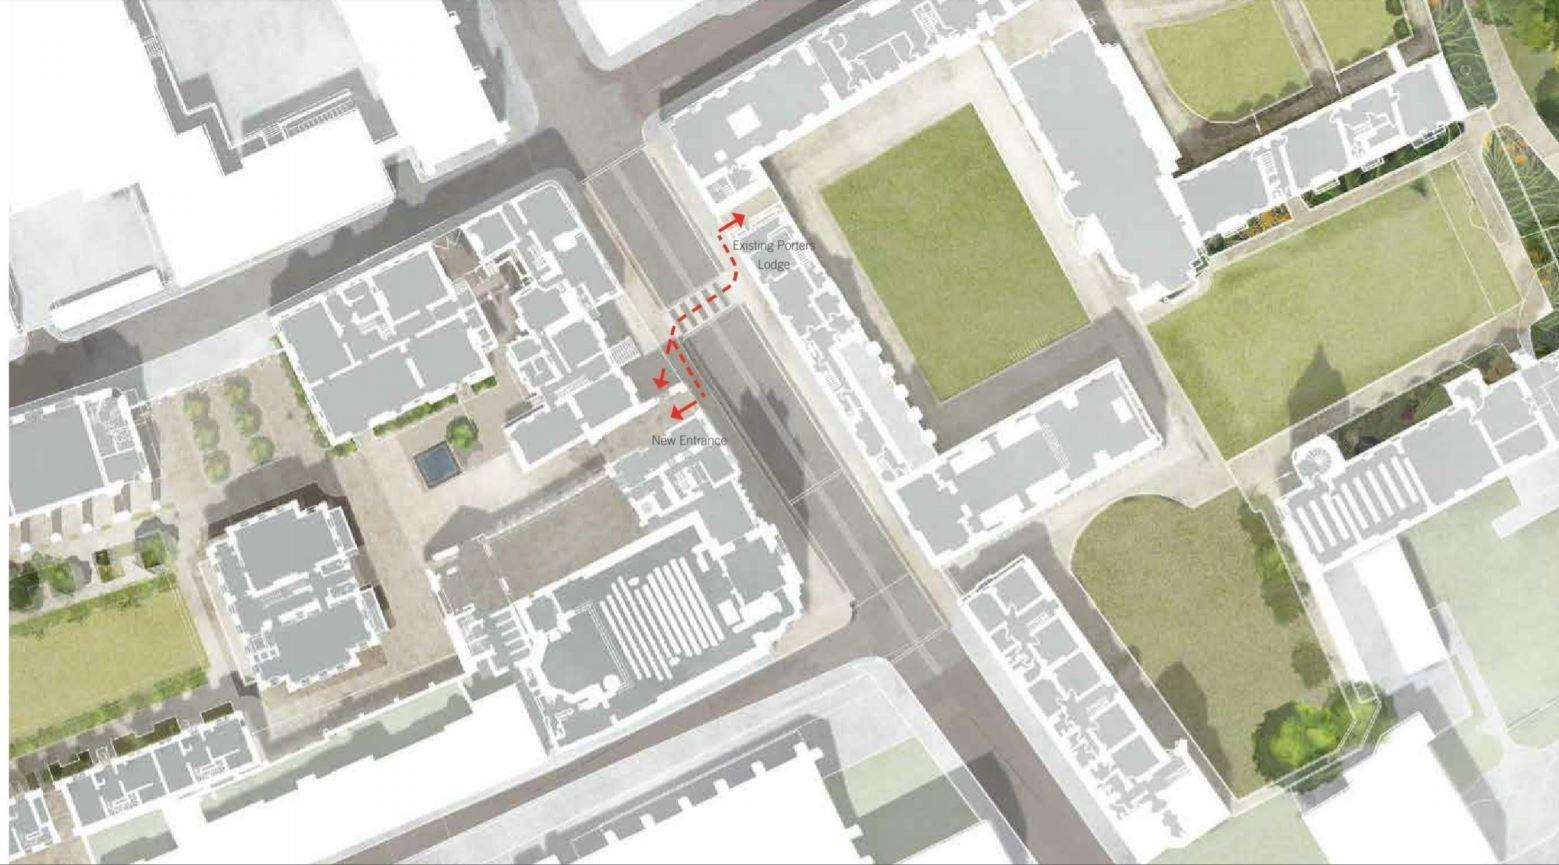 The Trumpington Street crossing -- part of the Pembroke College proposed development. Image: Haworth Tompkins (6926414)